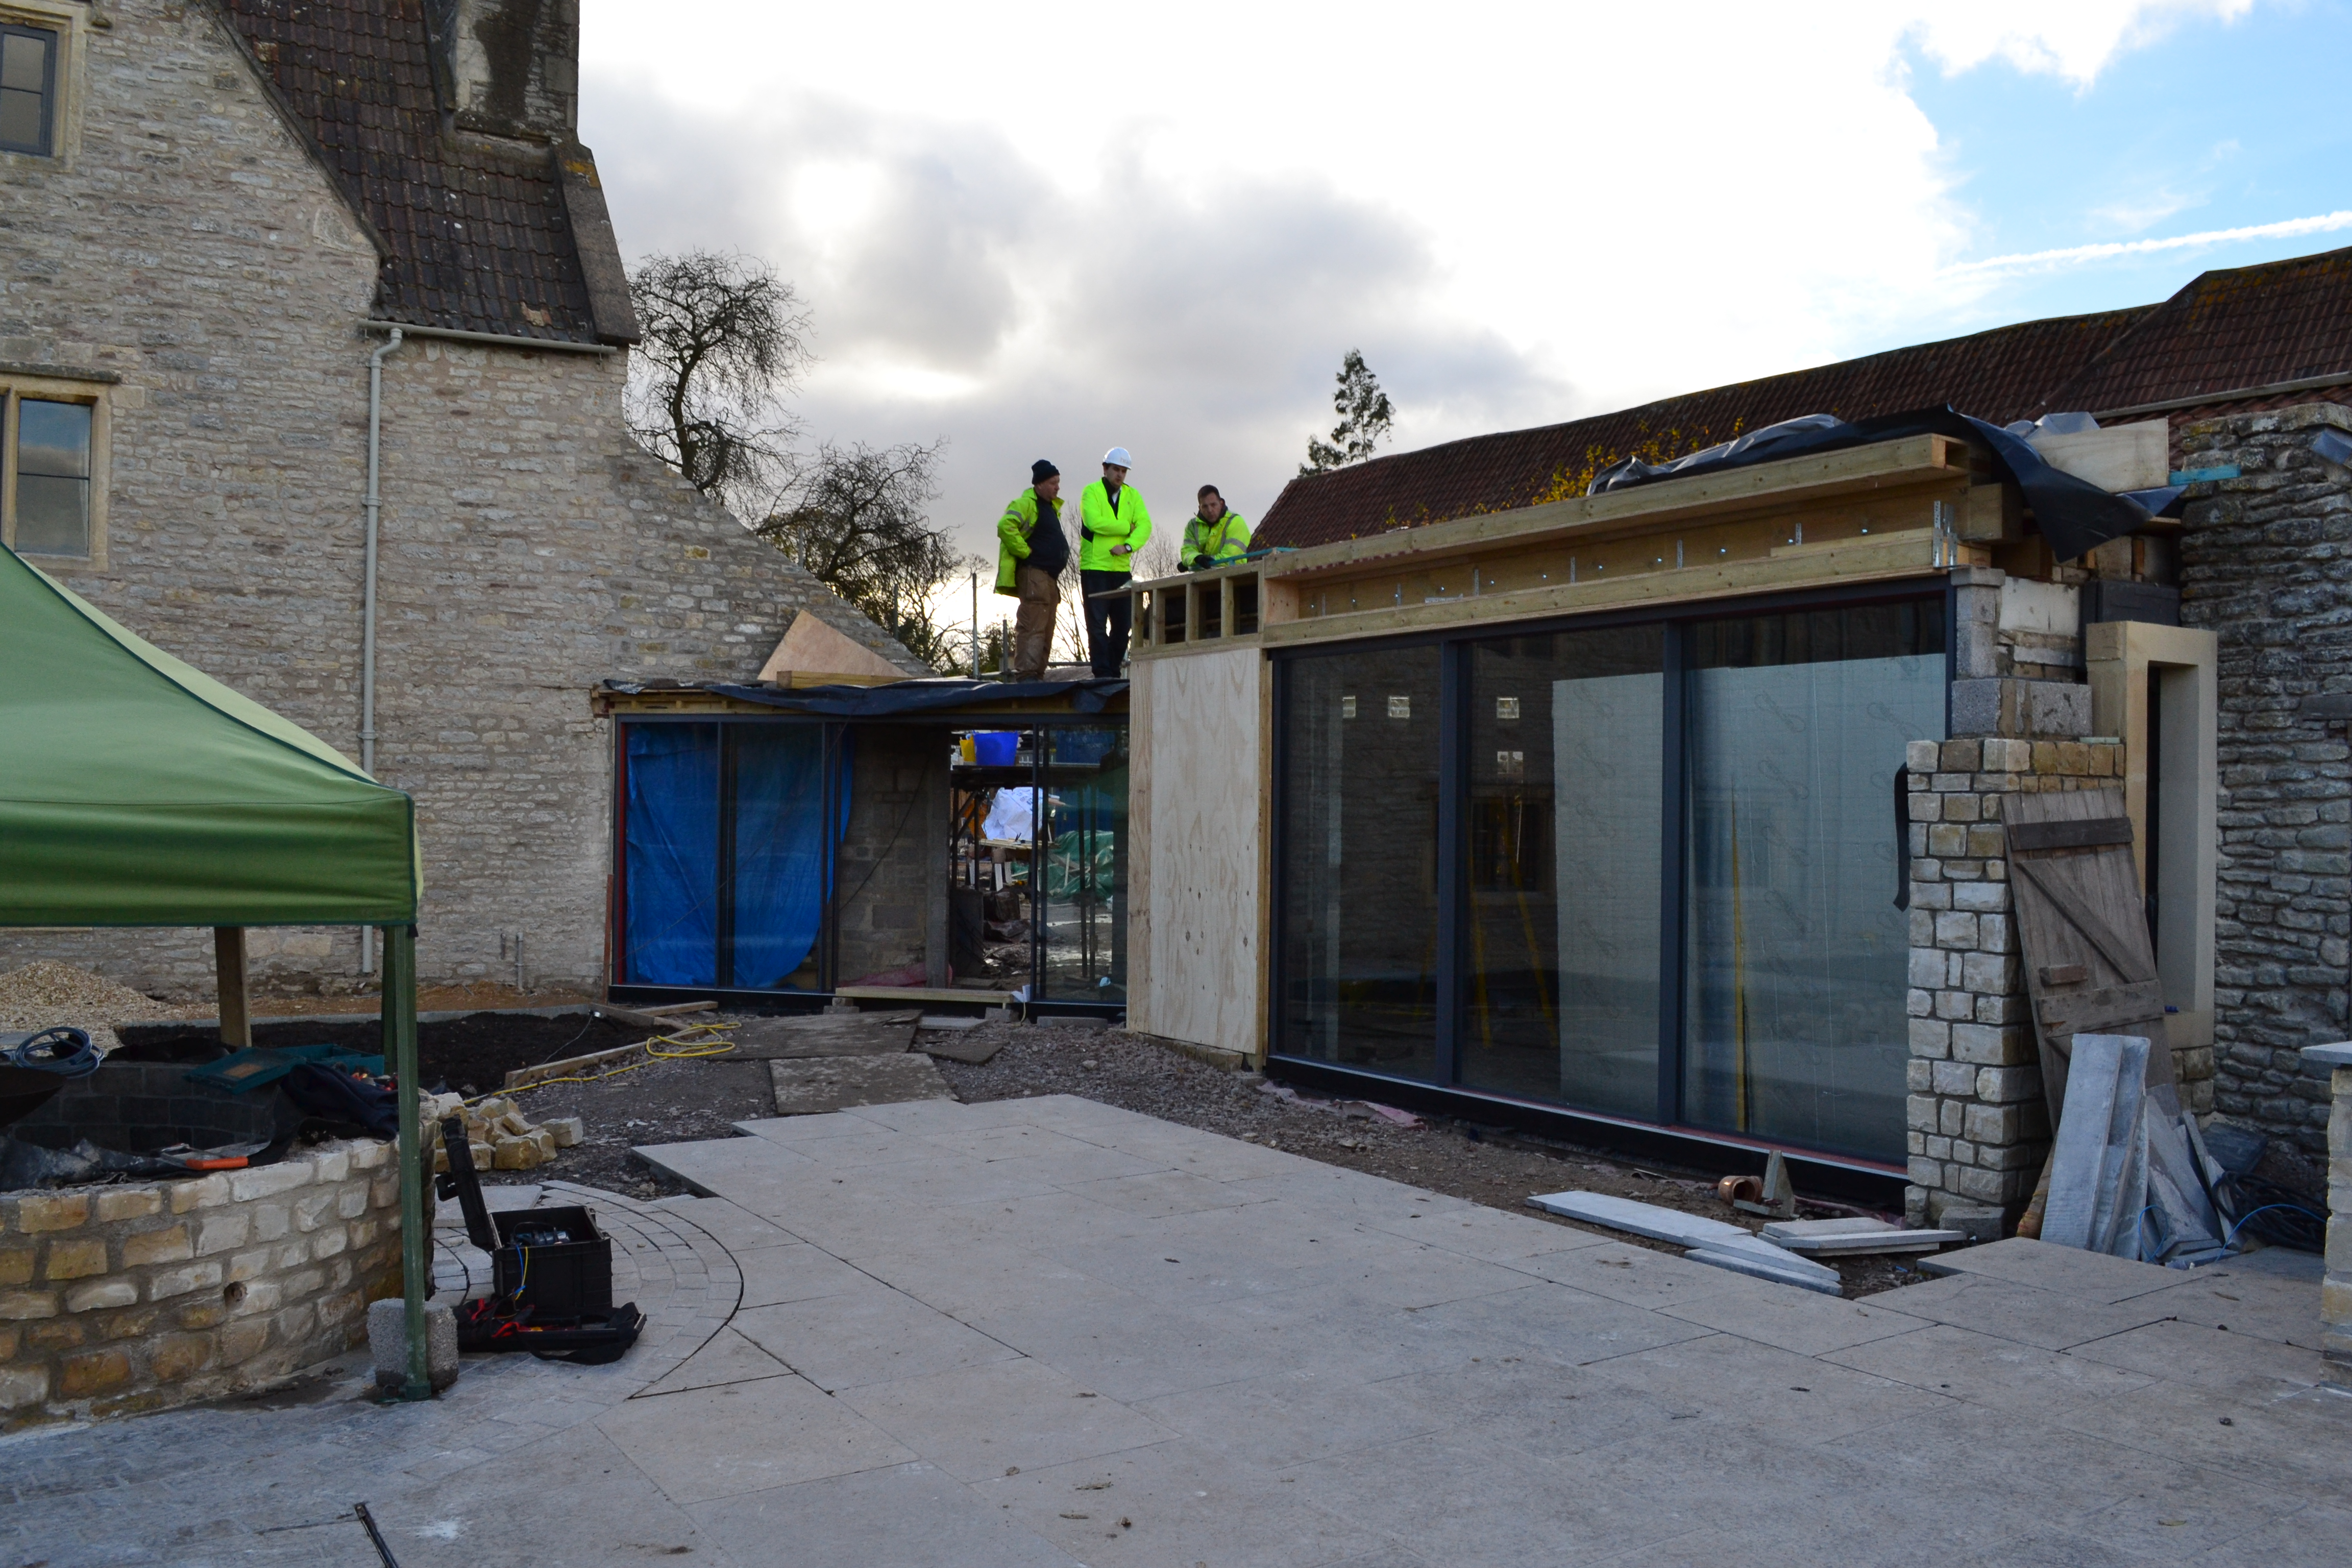 Image showing hetreed ross architects on site in branded hi-vis and hard hats against the backdrop of Listed Manor House Grade ll* Listed Extension